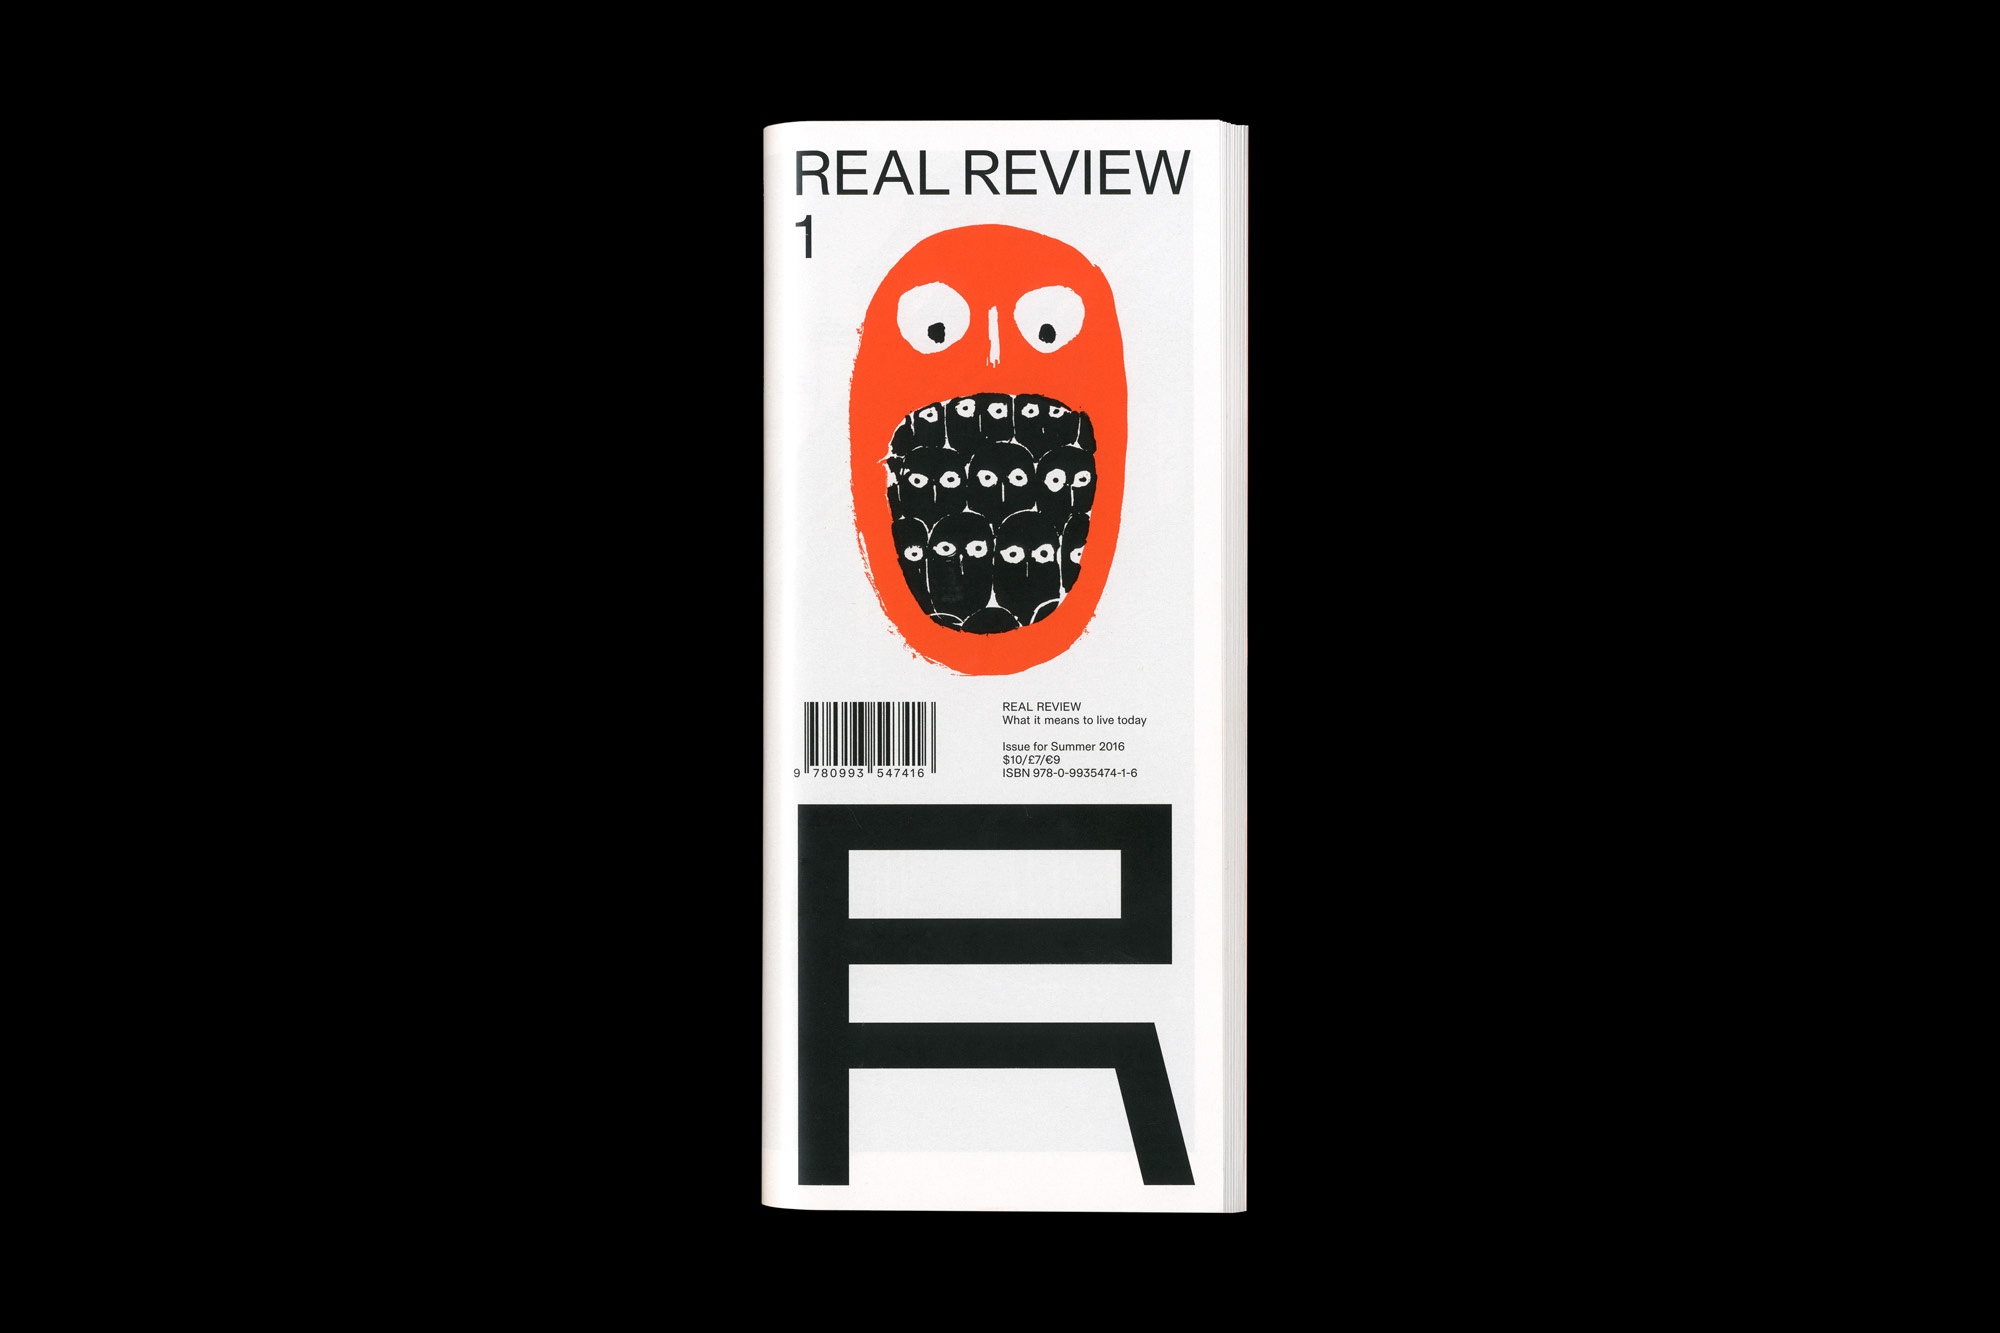 Real Review 1